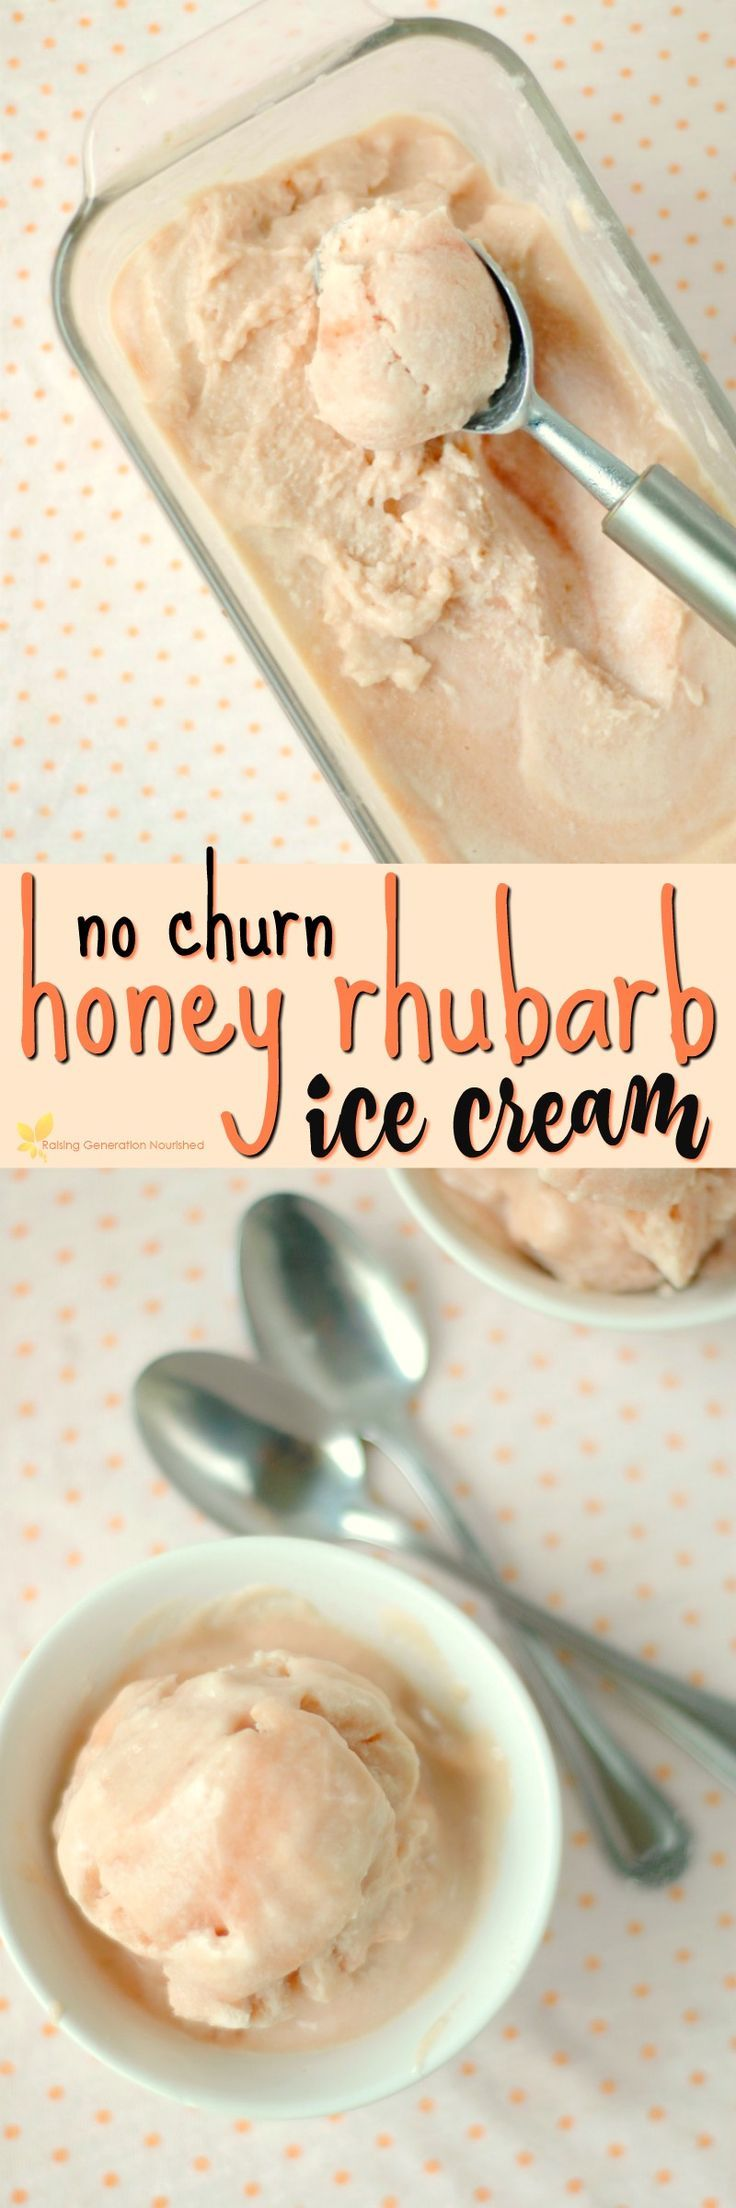 No Churn Honey Rhubarb Ice Cream